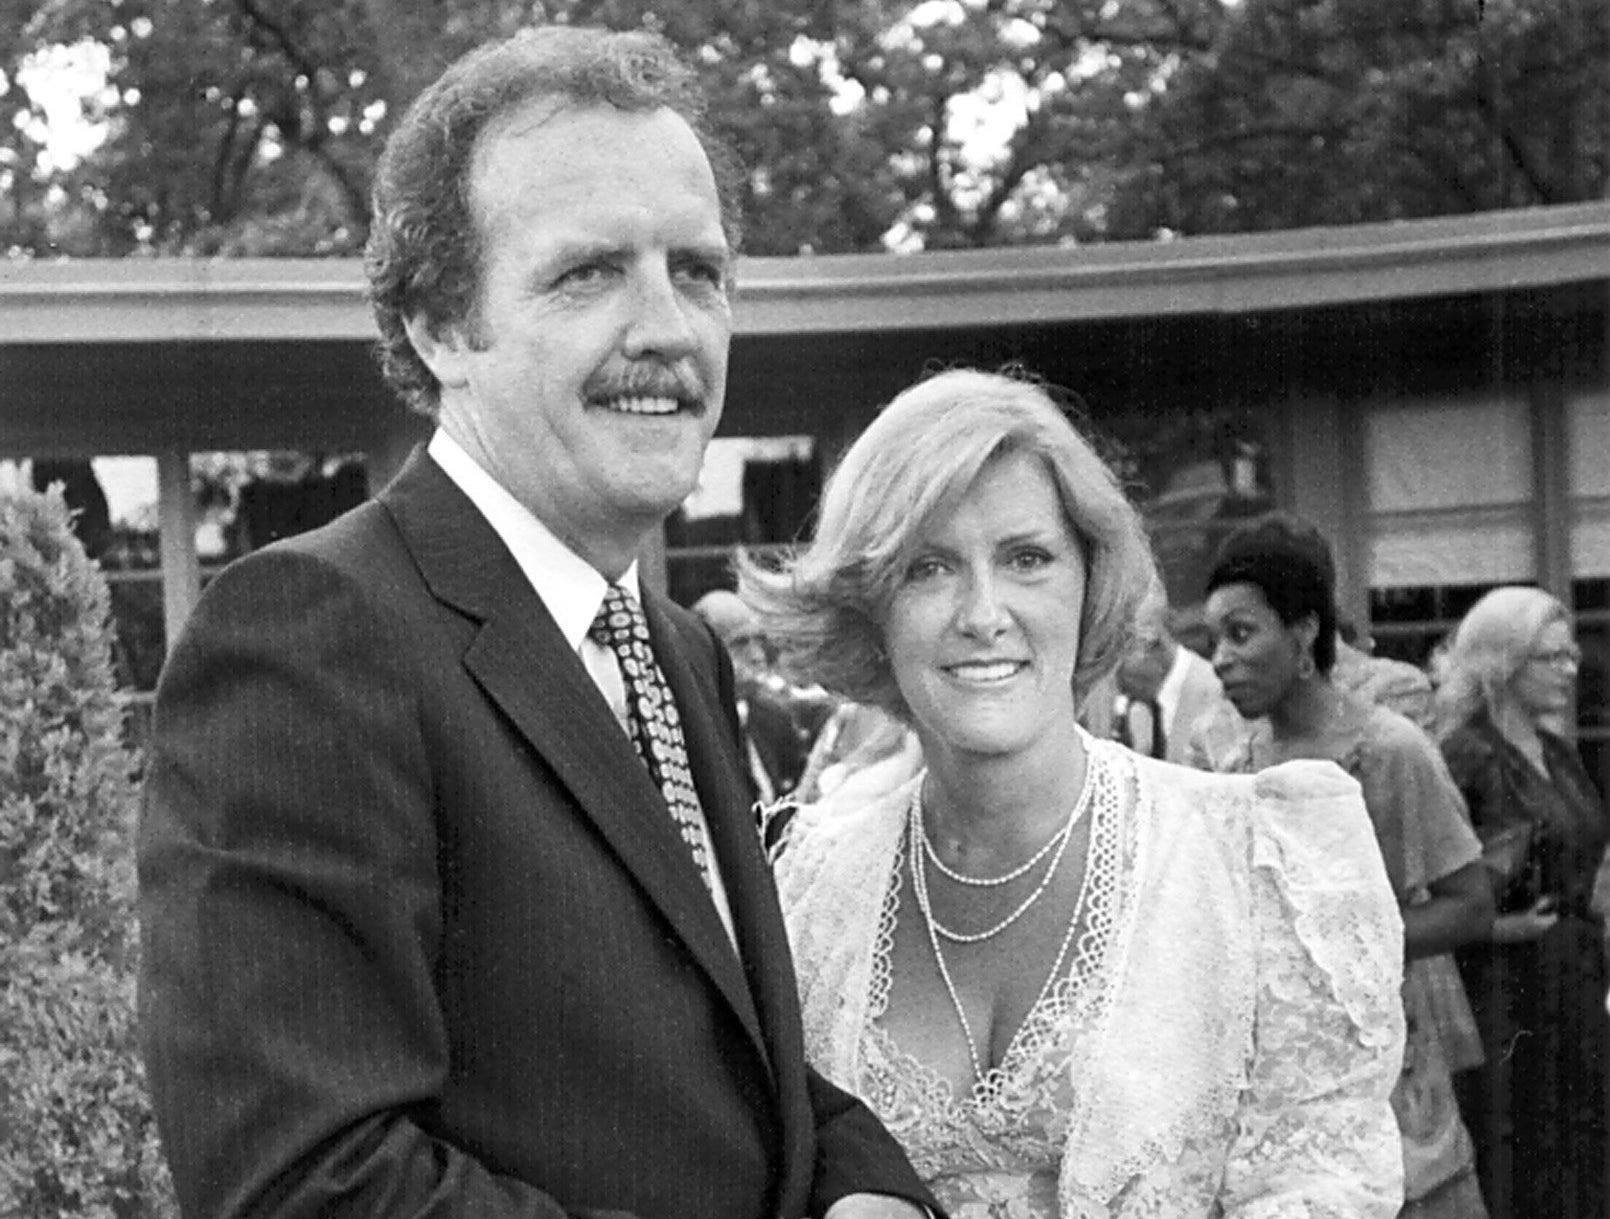 Dr. and Mrs. Charles White celebrate their marriage on 28 Jun 1980.